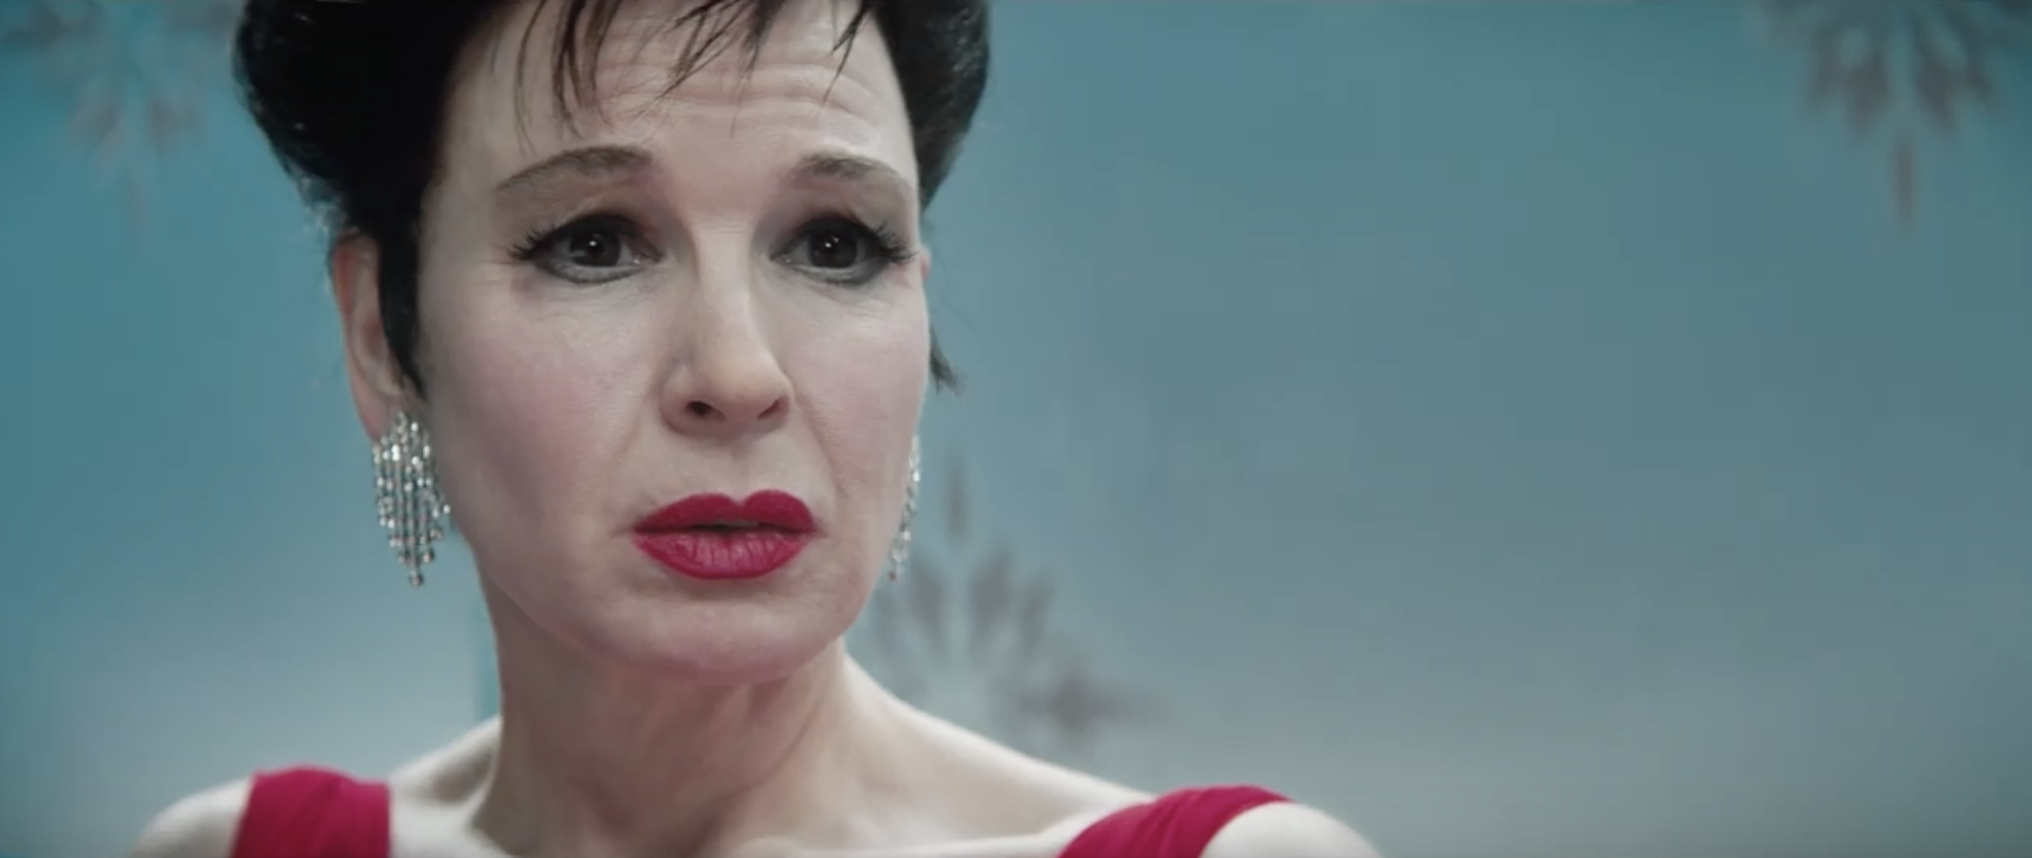 Renee Zellweger Wows in Official Trailer for Judy